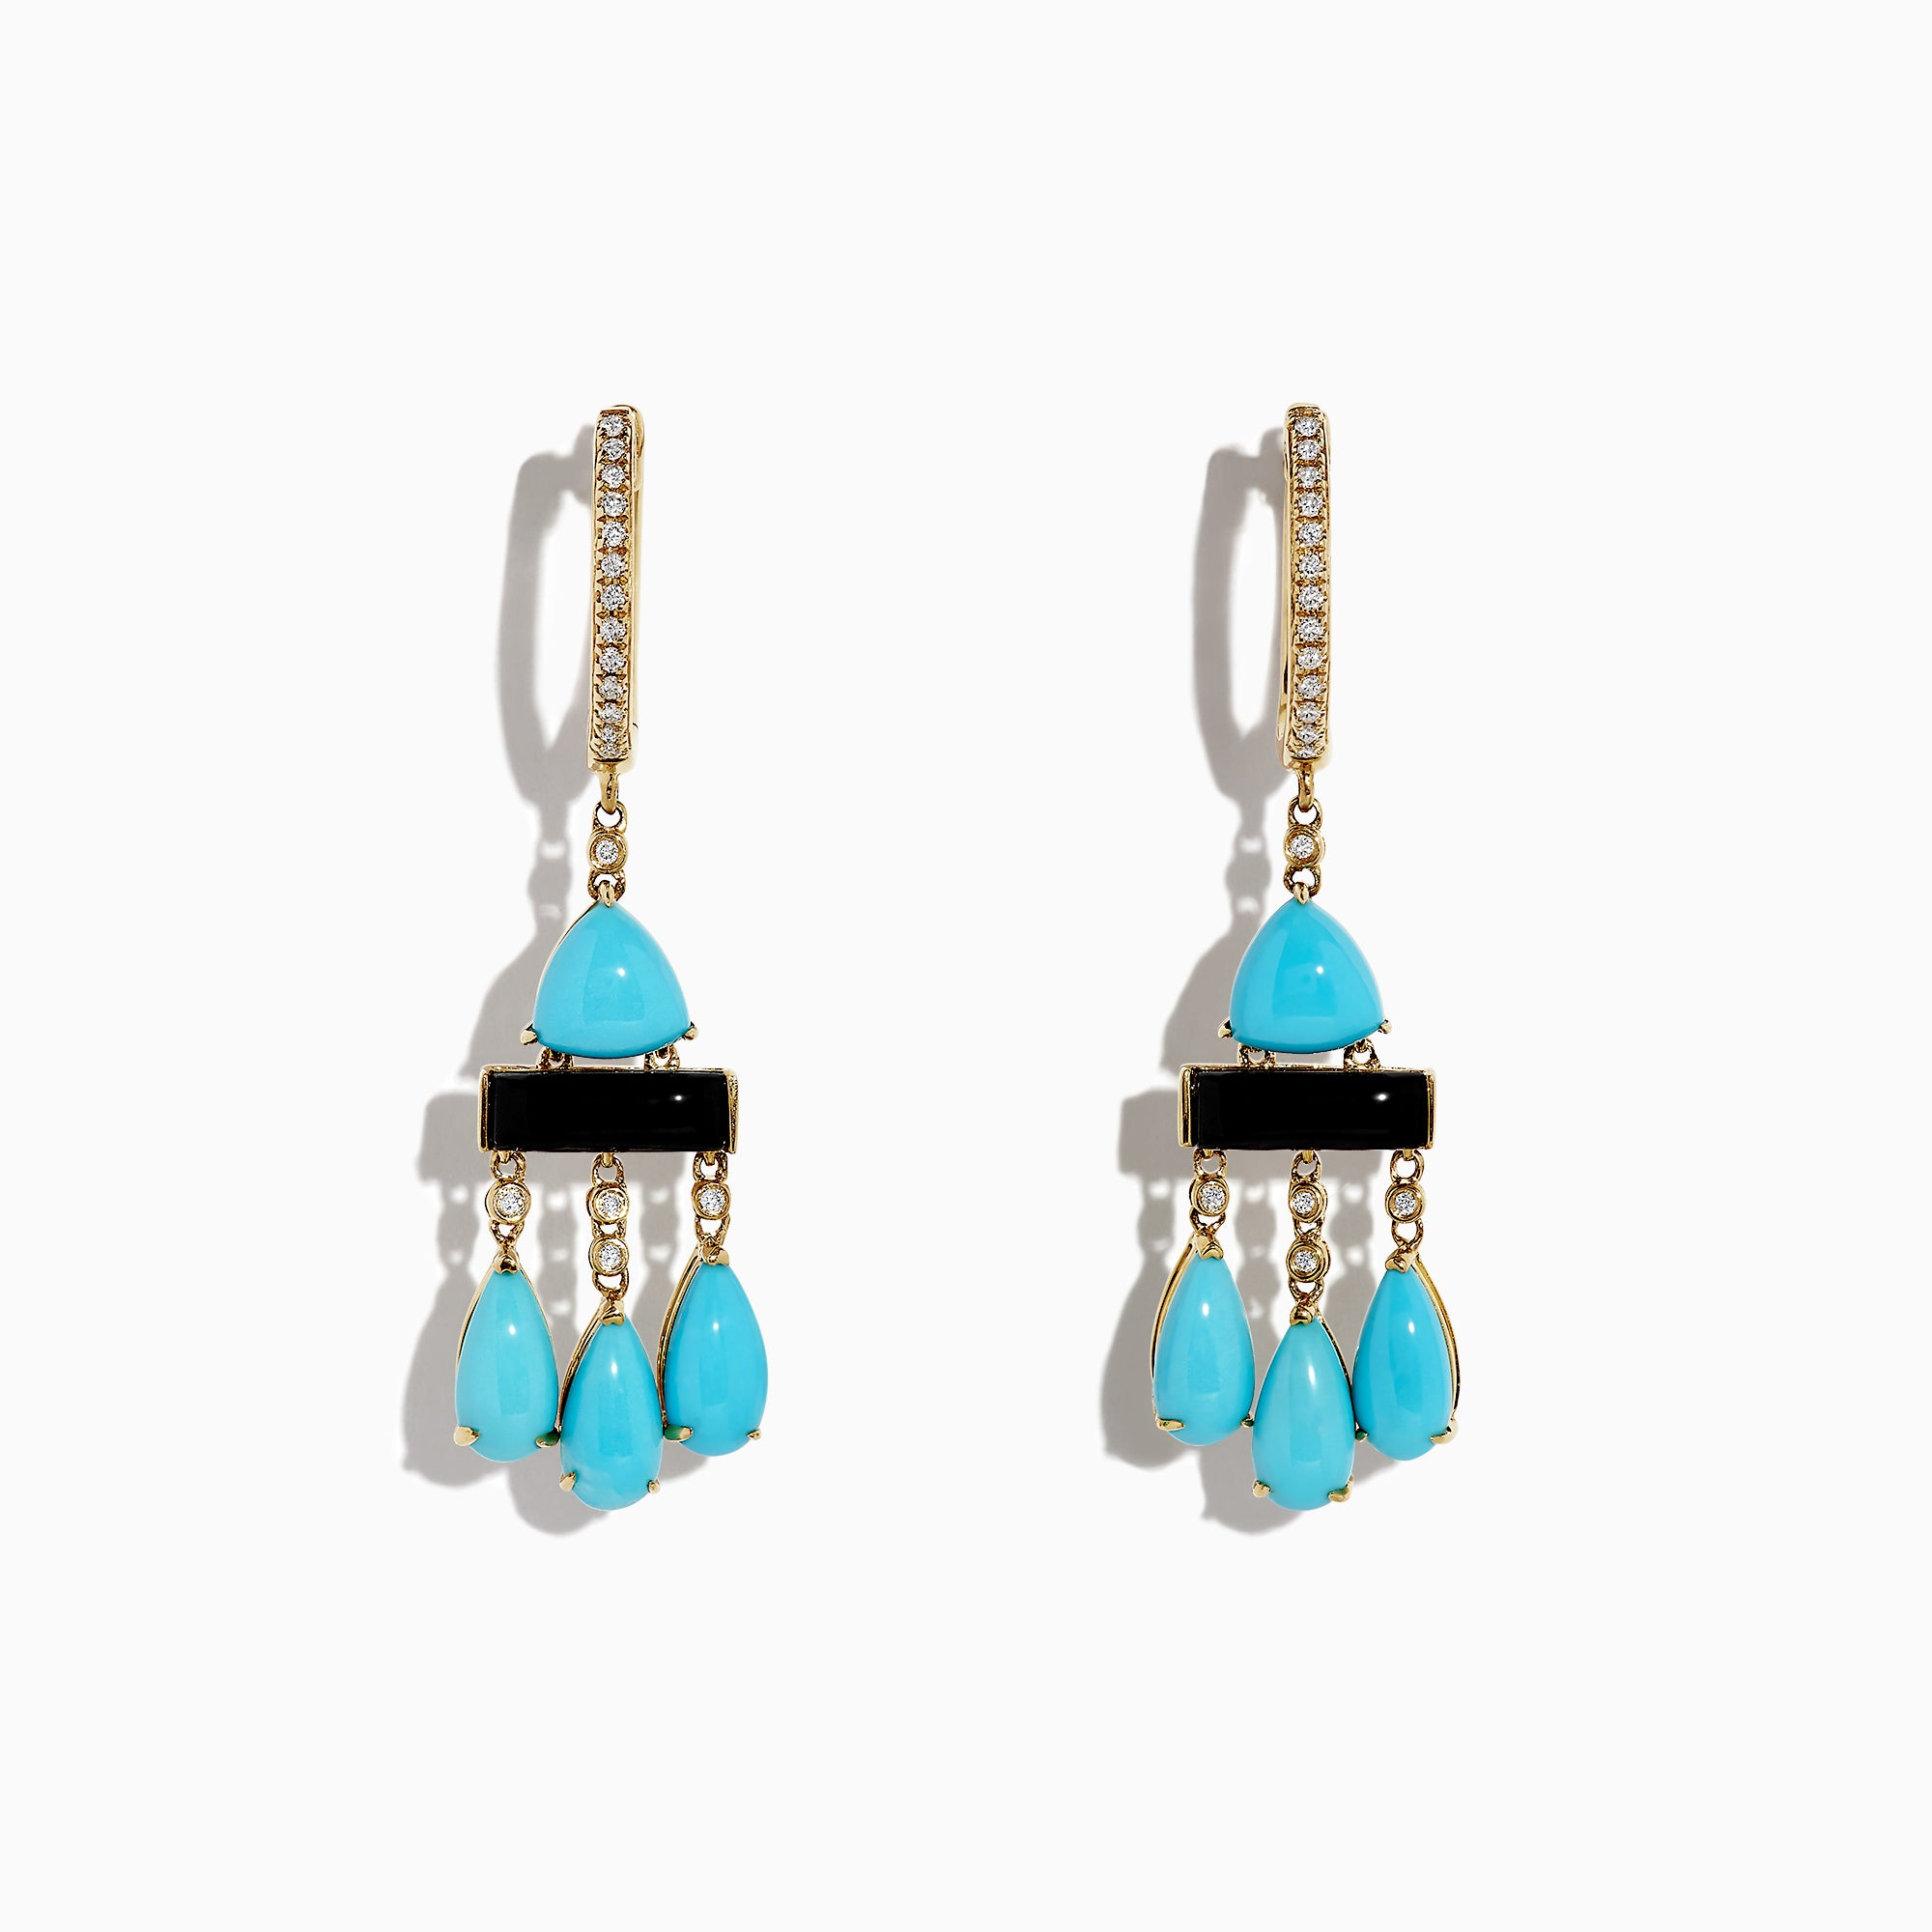 Effy 14K Yellow Gold Turquoise and Diamond Drop Earrings, 5.78 TCW